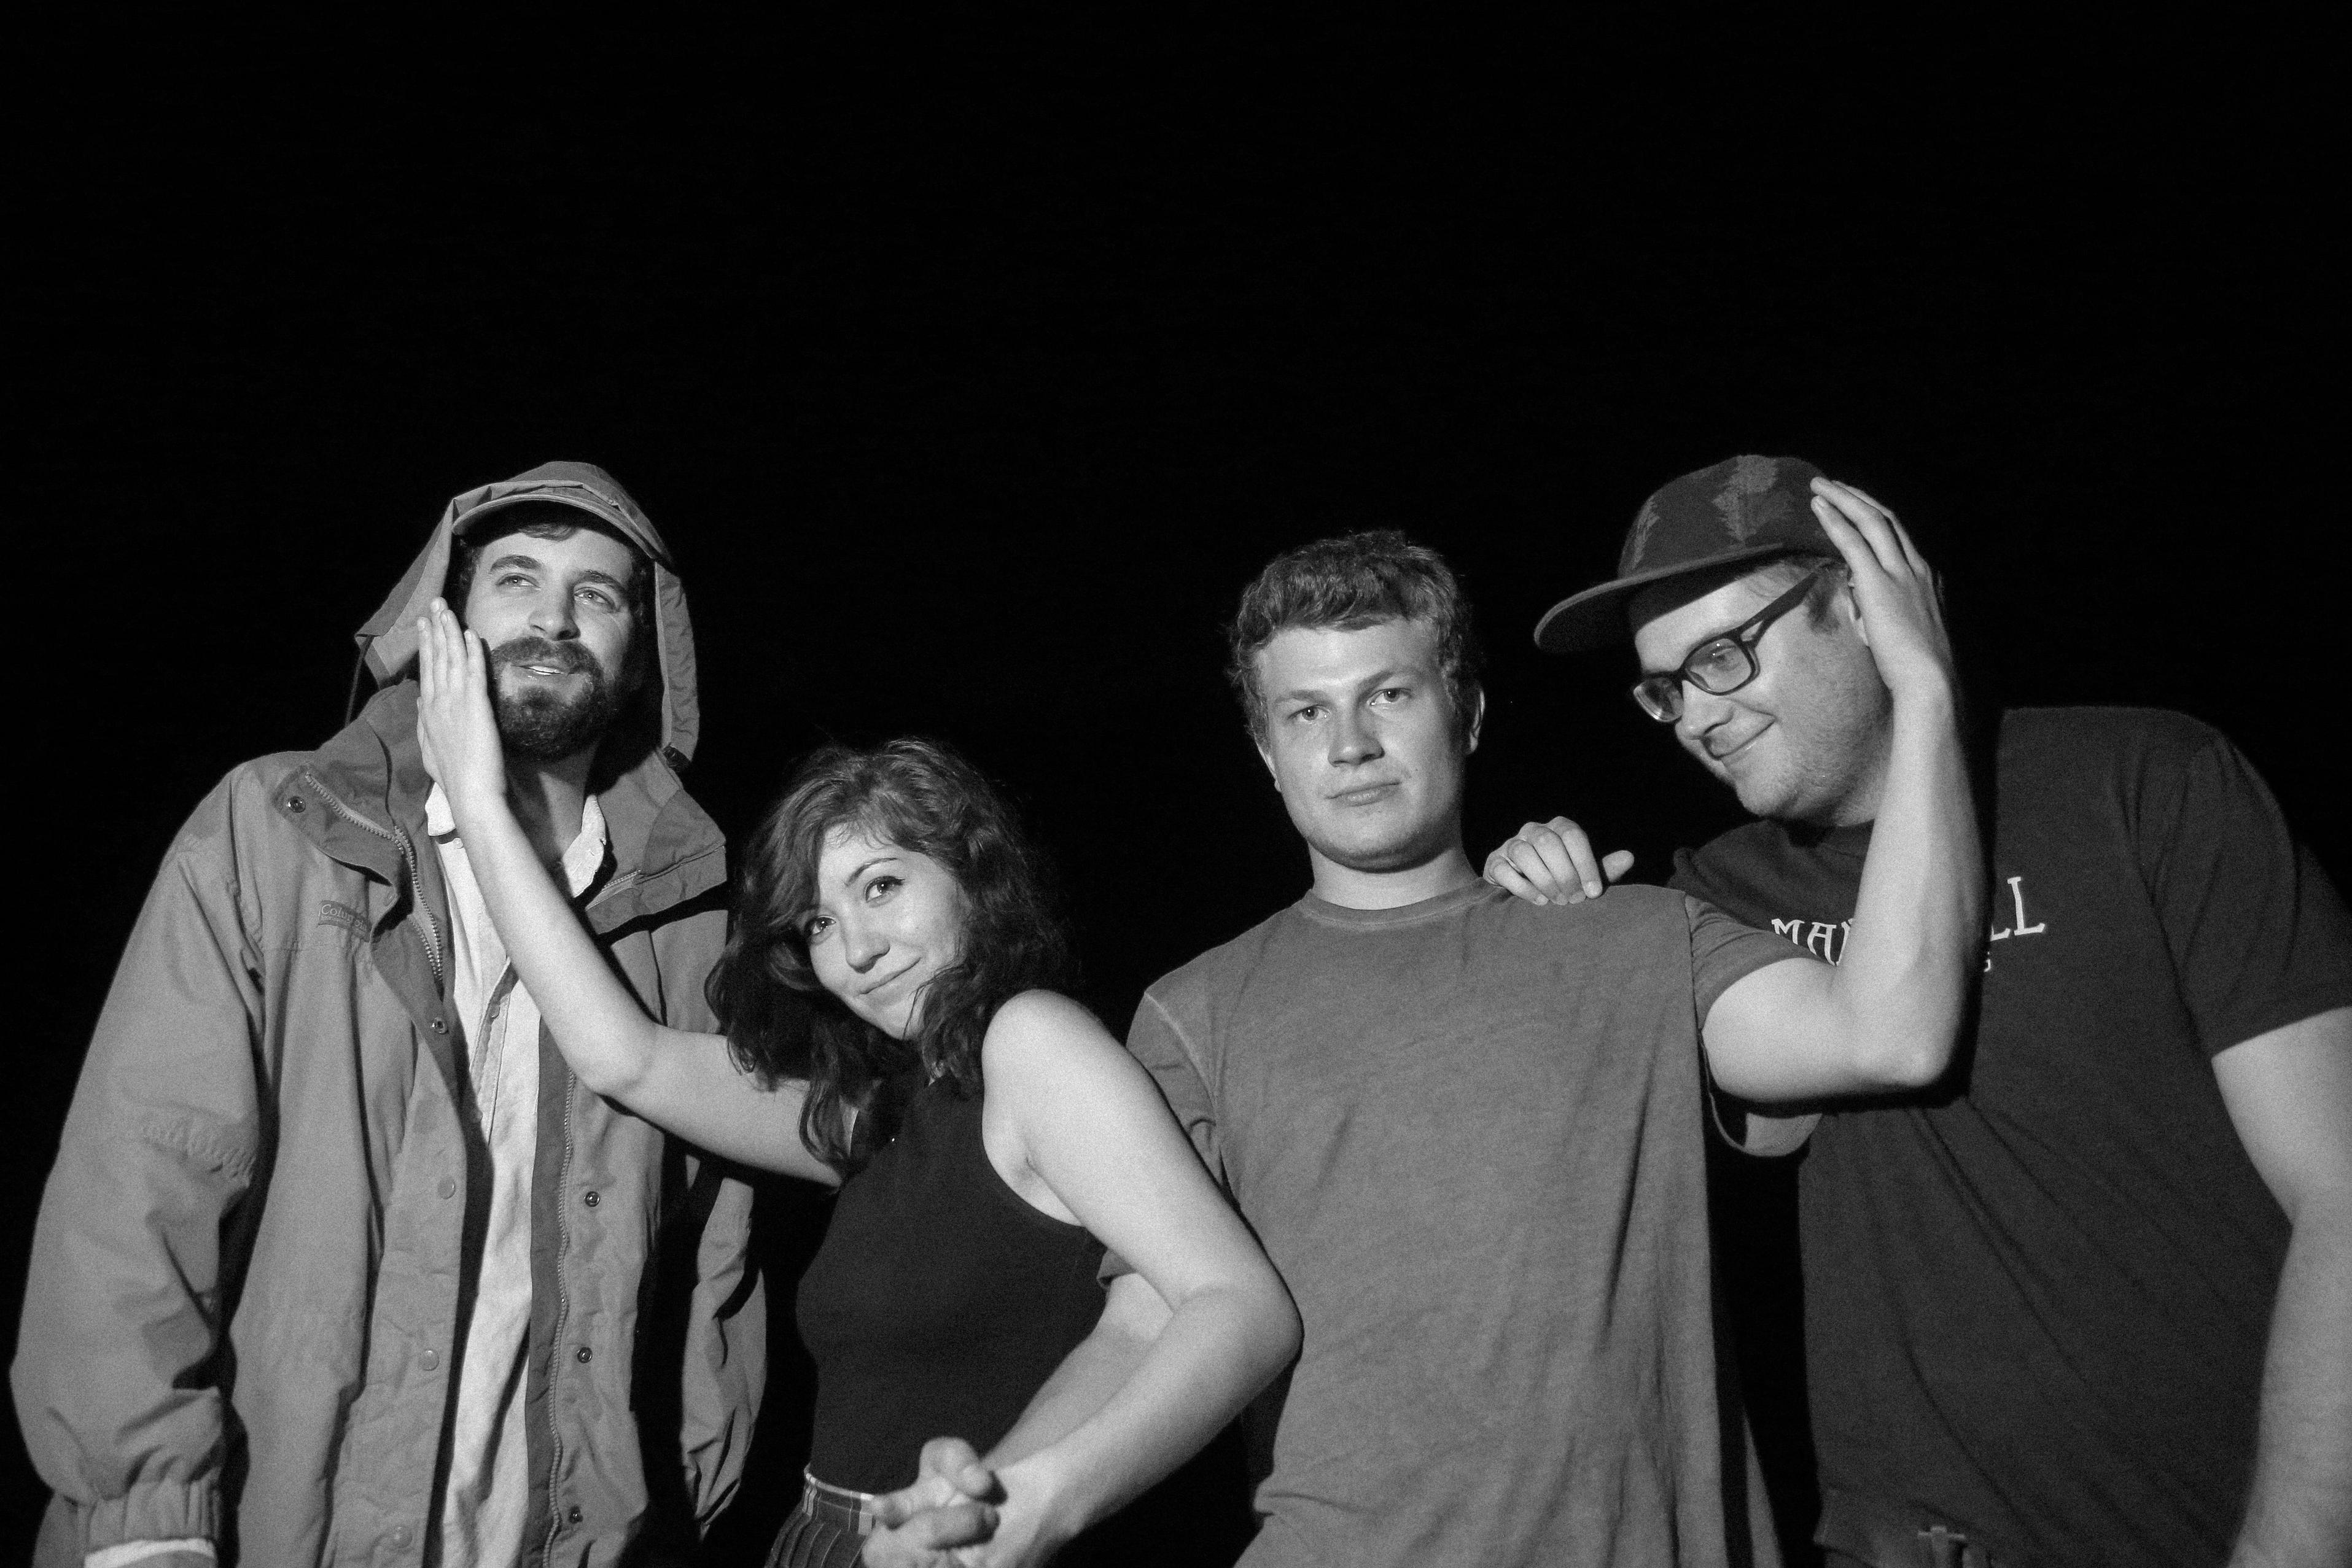 The Sea Life craft epic punk catharsis on searing new single 'Blame'